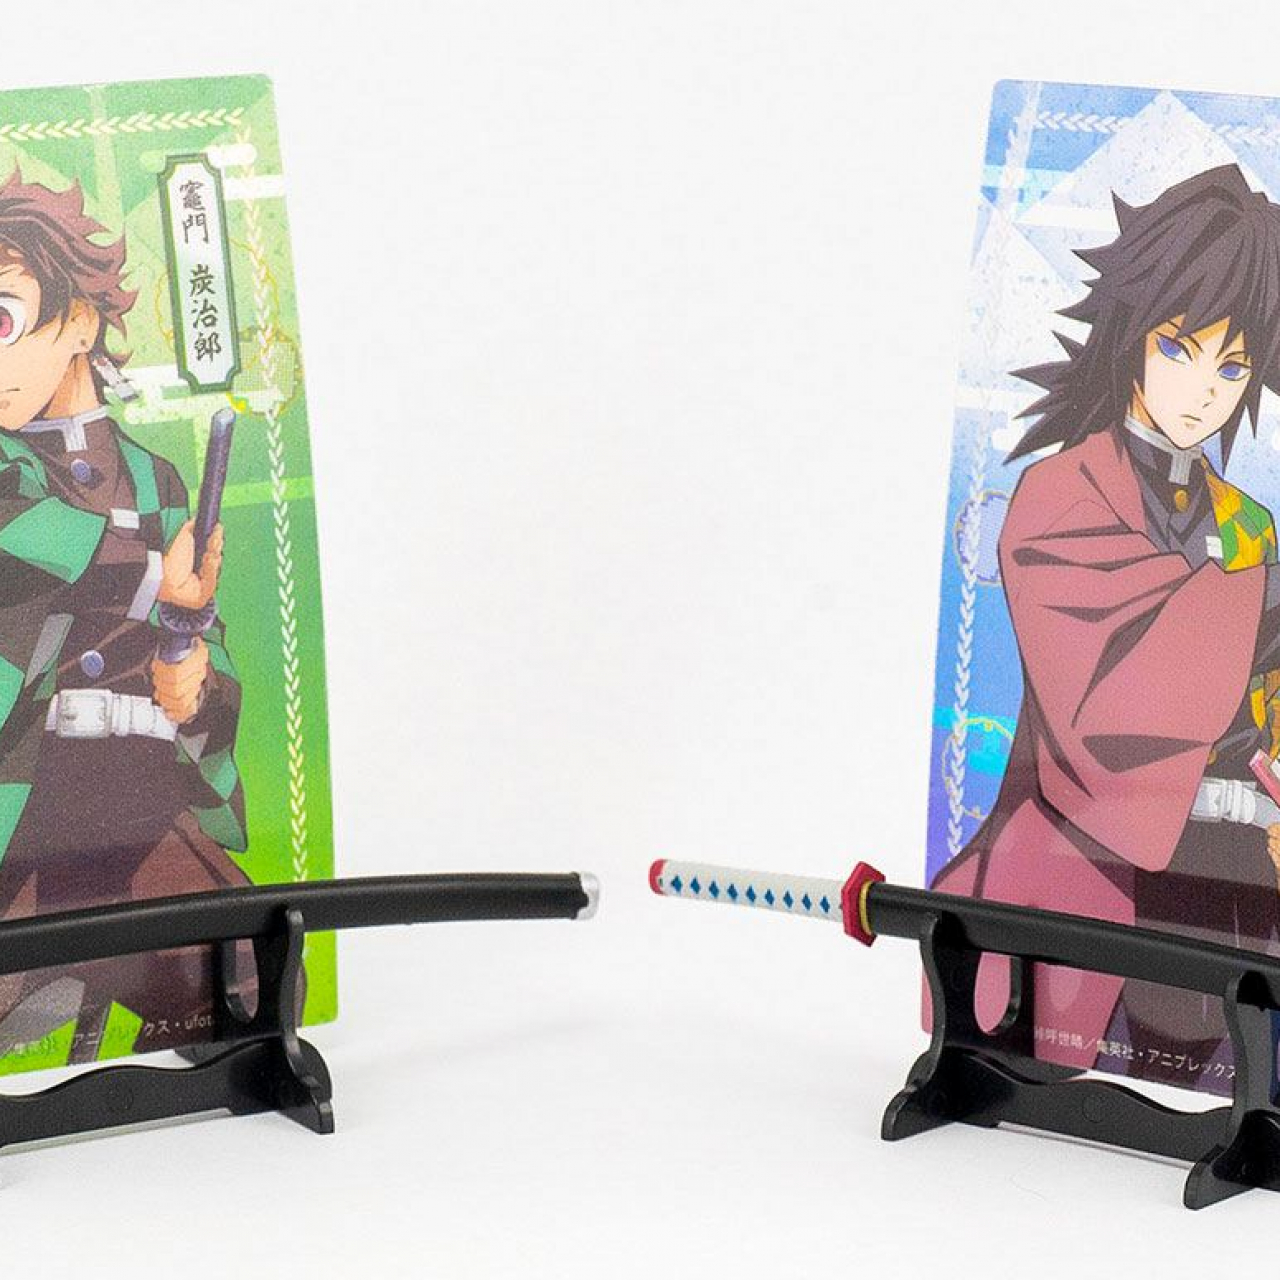 Demon Slayer: Kimetsu no Yaiba Nichirin Swords Collection 10 cm Assortment (10)